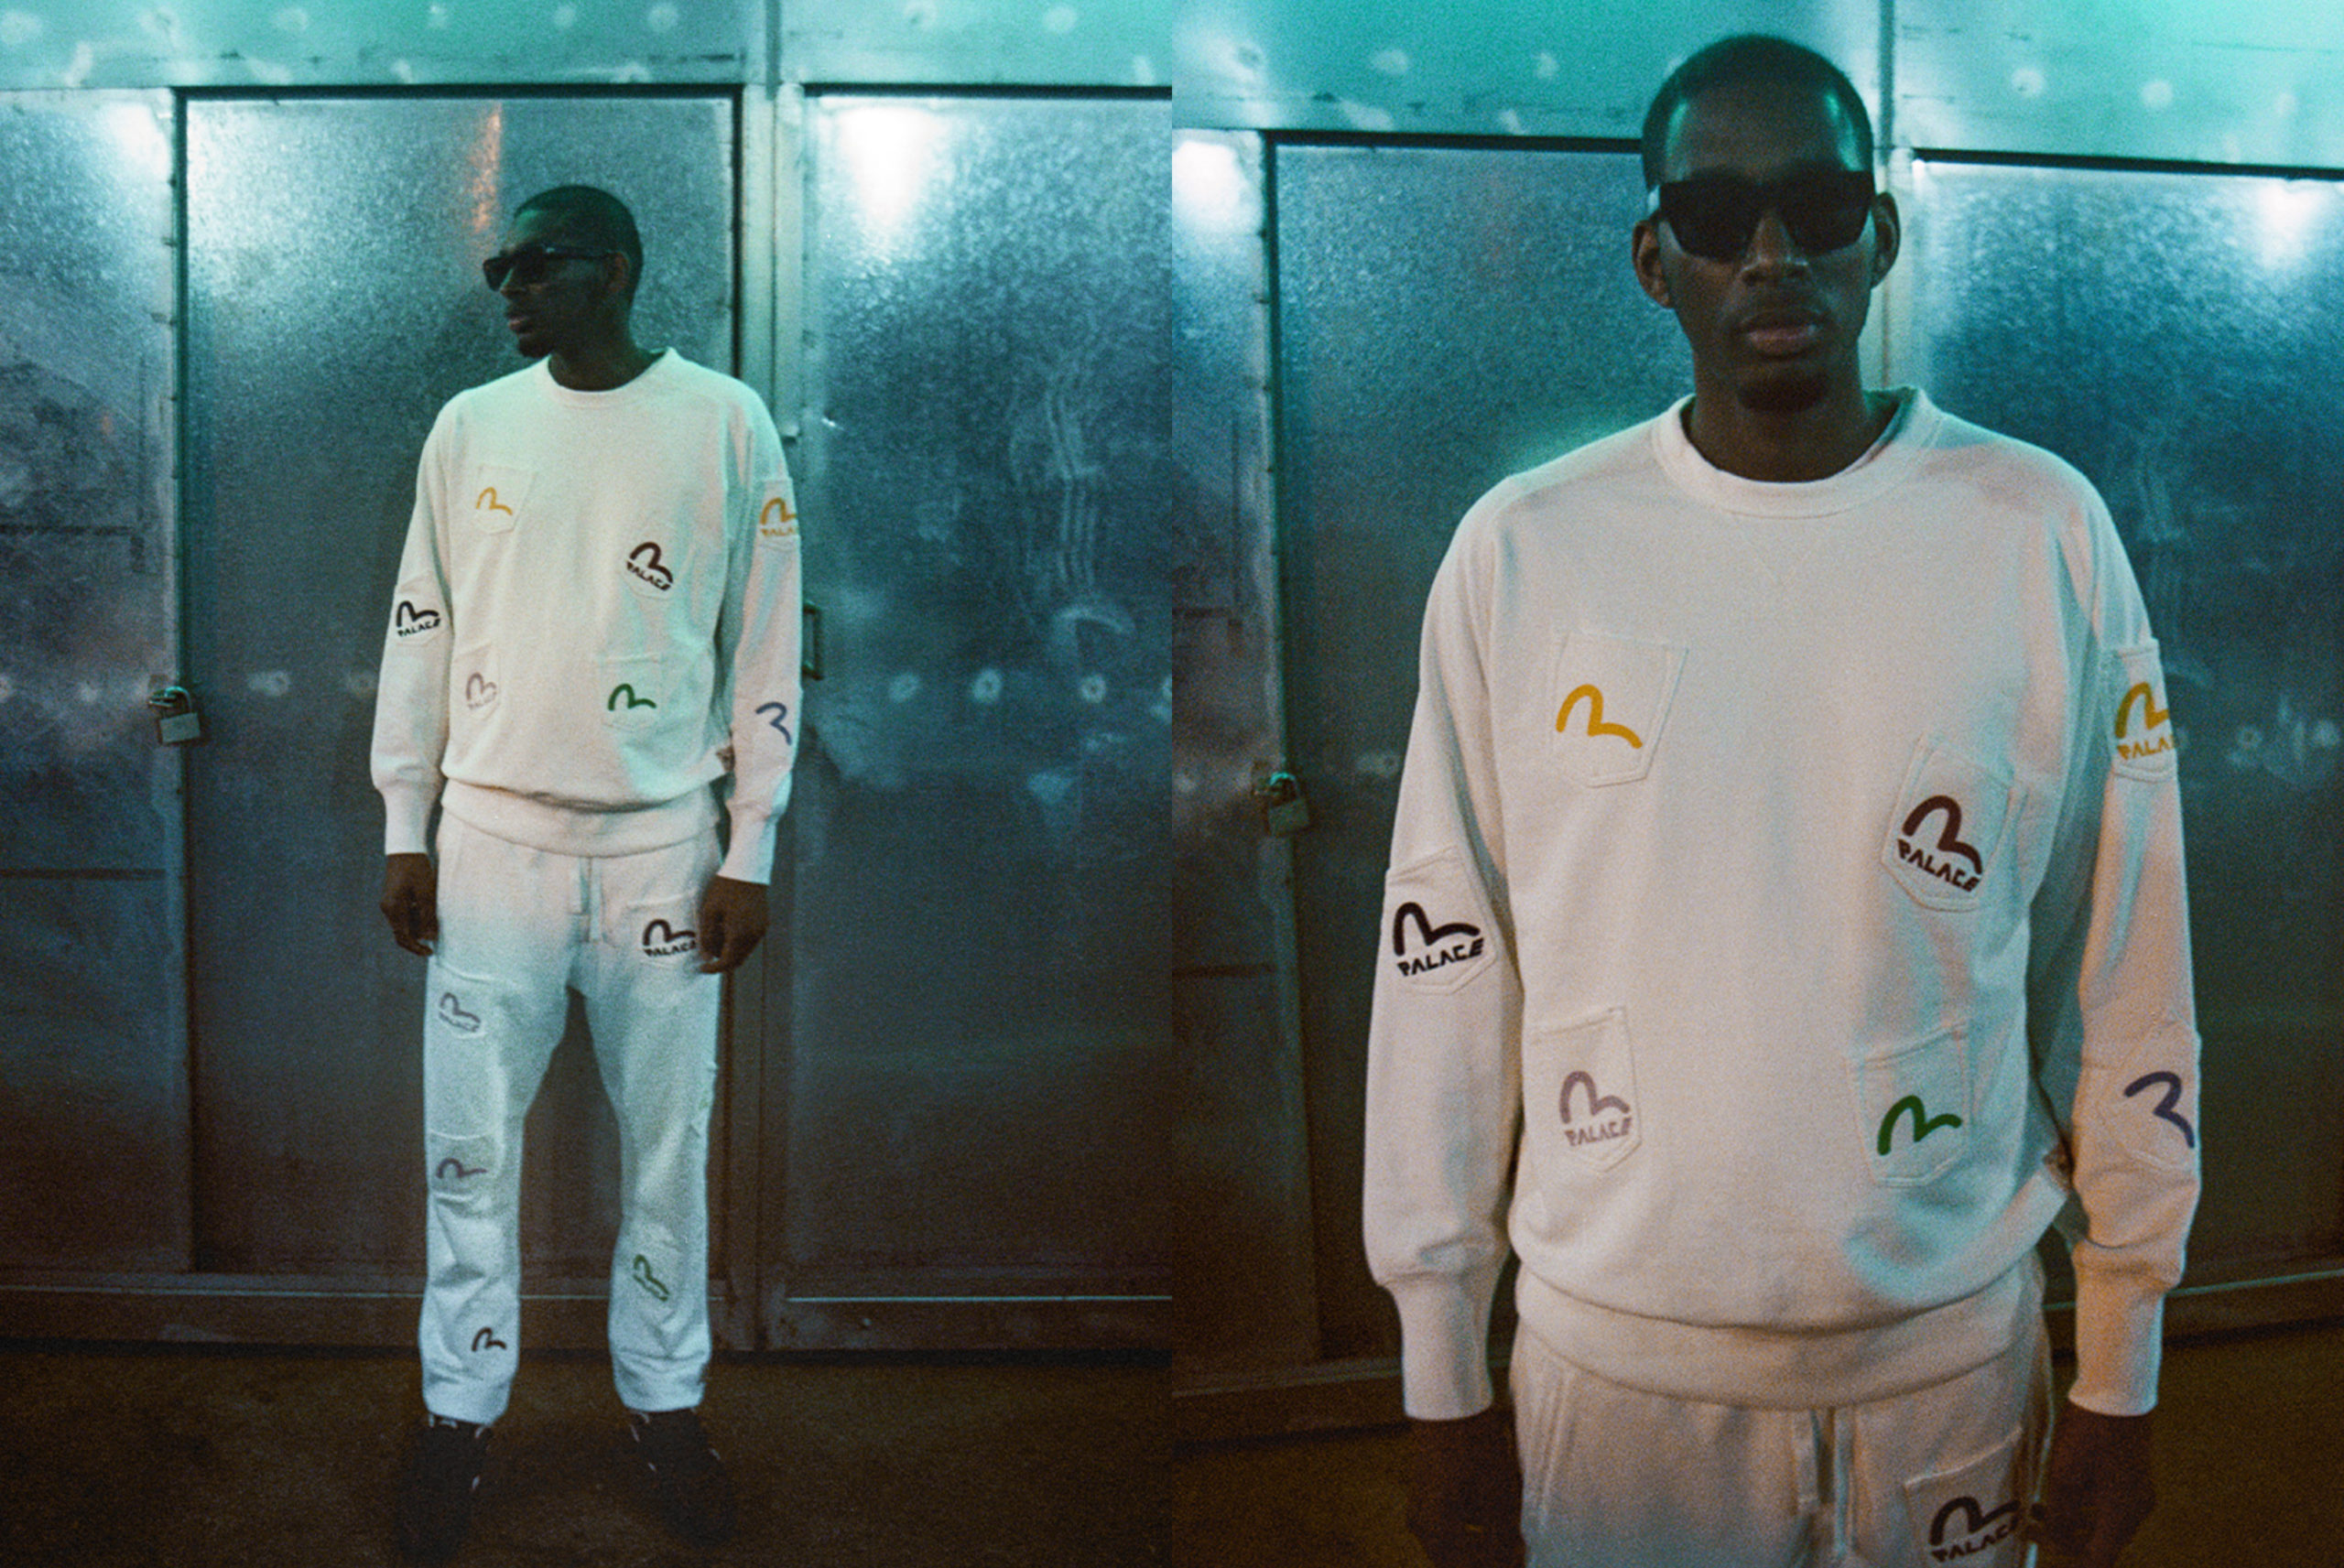 Palace and EVISU Return With Second Collaborative Collection